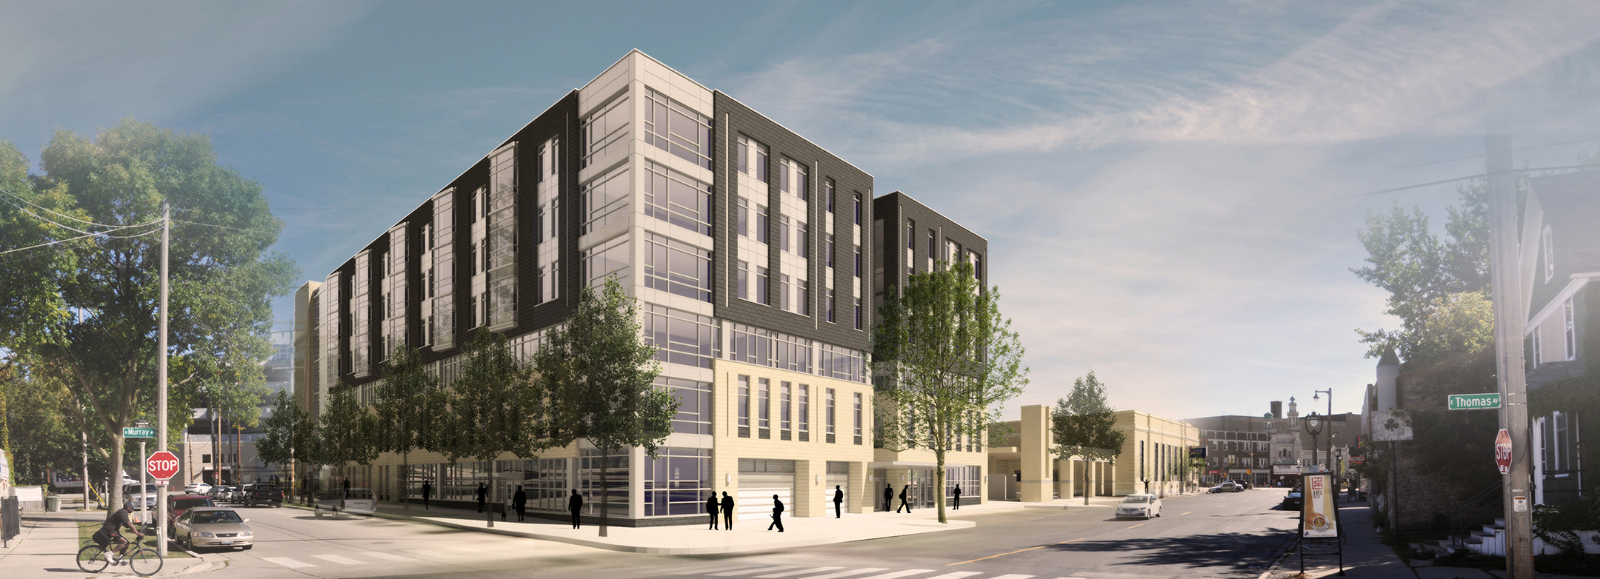 Northwest corner rendering of Greenwich Park Apartments with both phases completed.